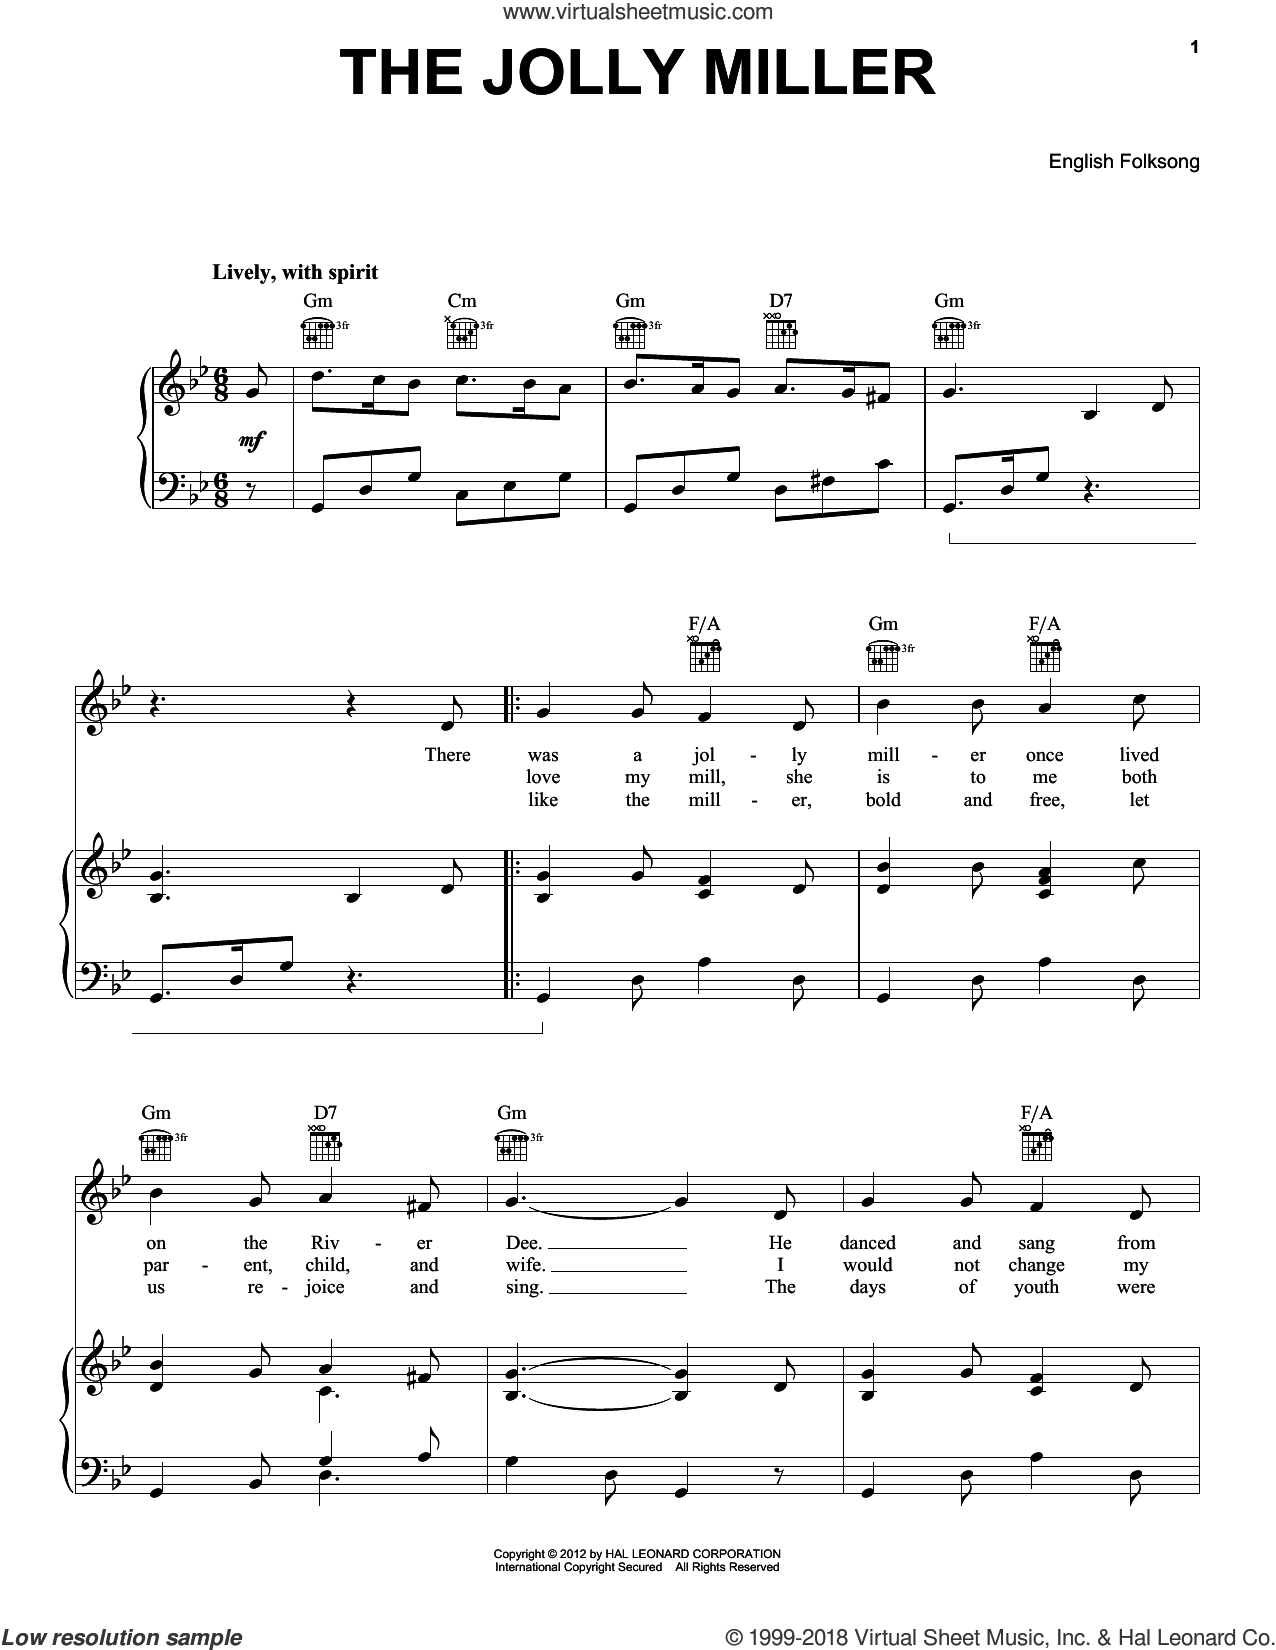 Jolly Miller sheet music for voice, piano or guitar